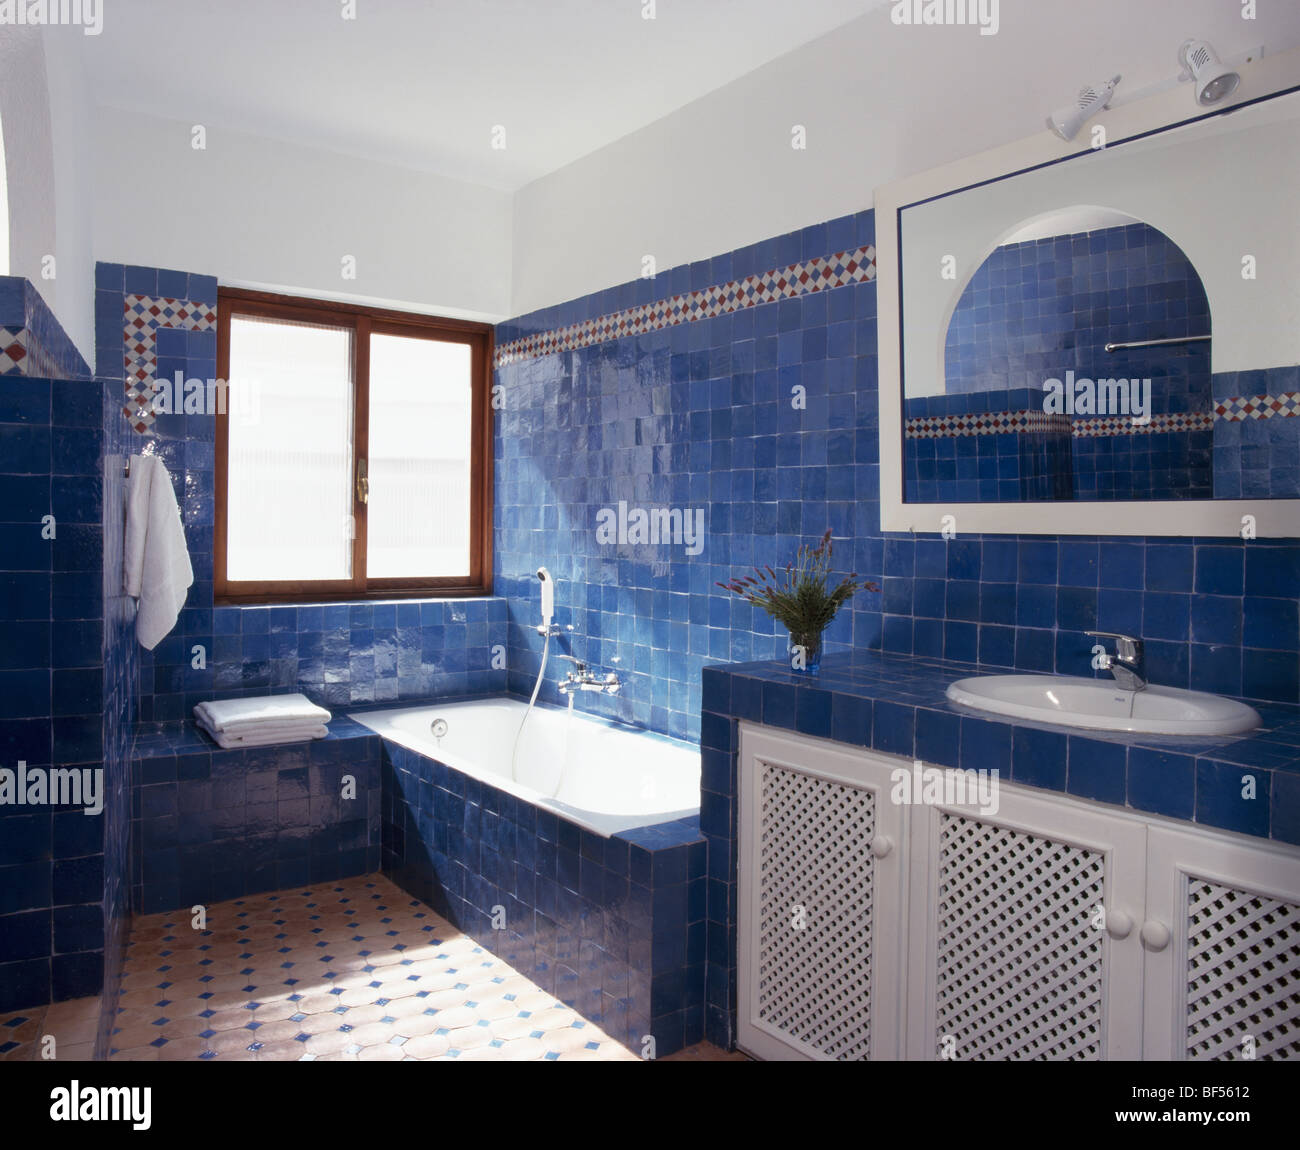 Uncategorized bathroom in spanish englishsurvivalkit Bright blue tile